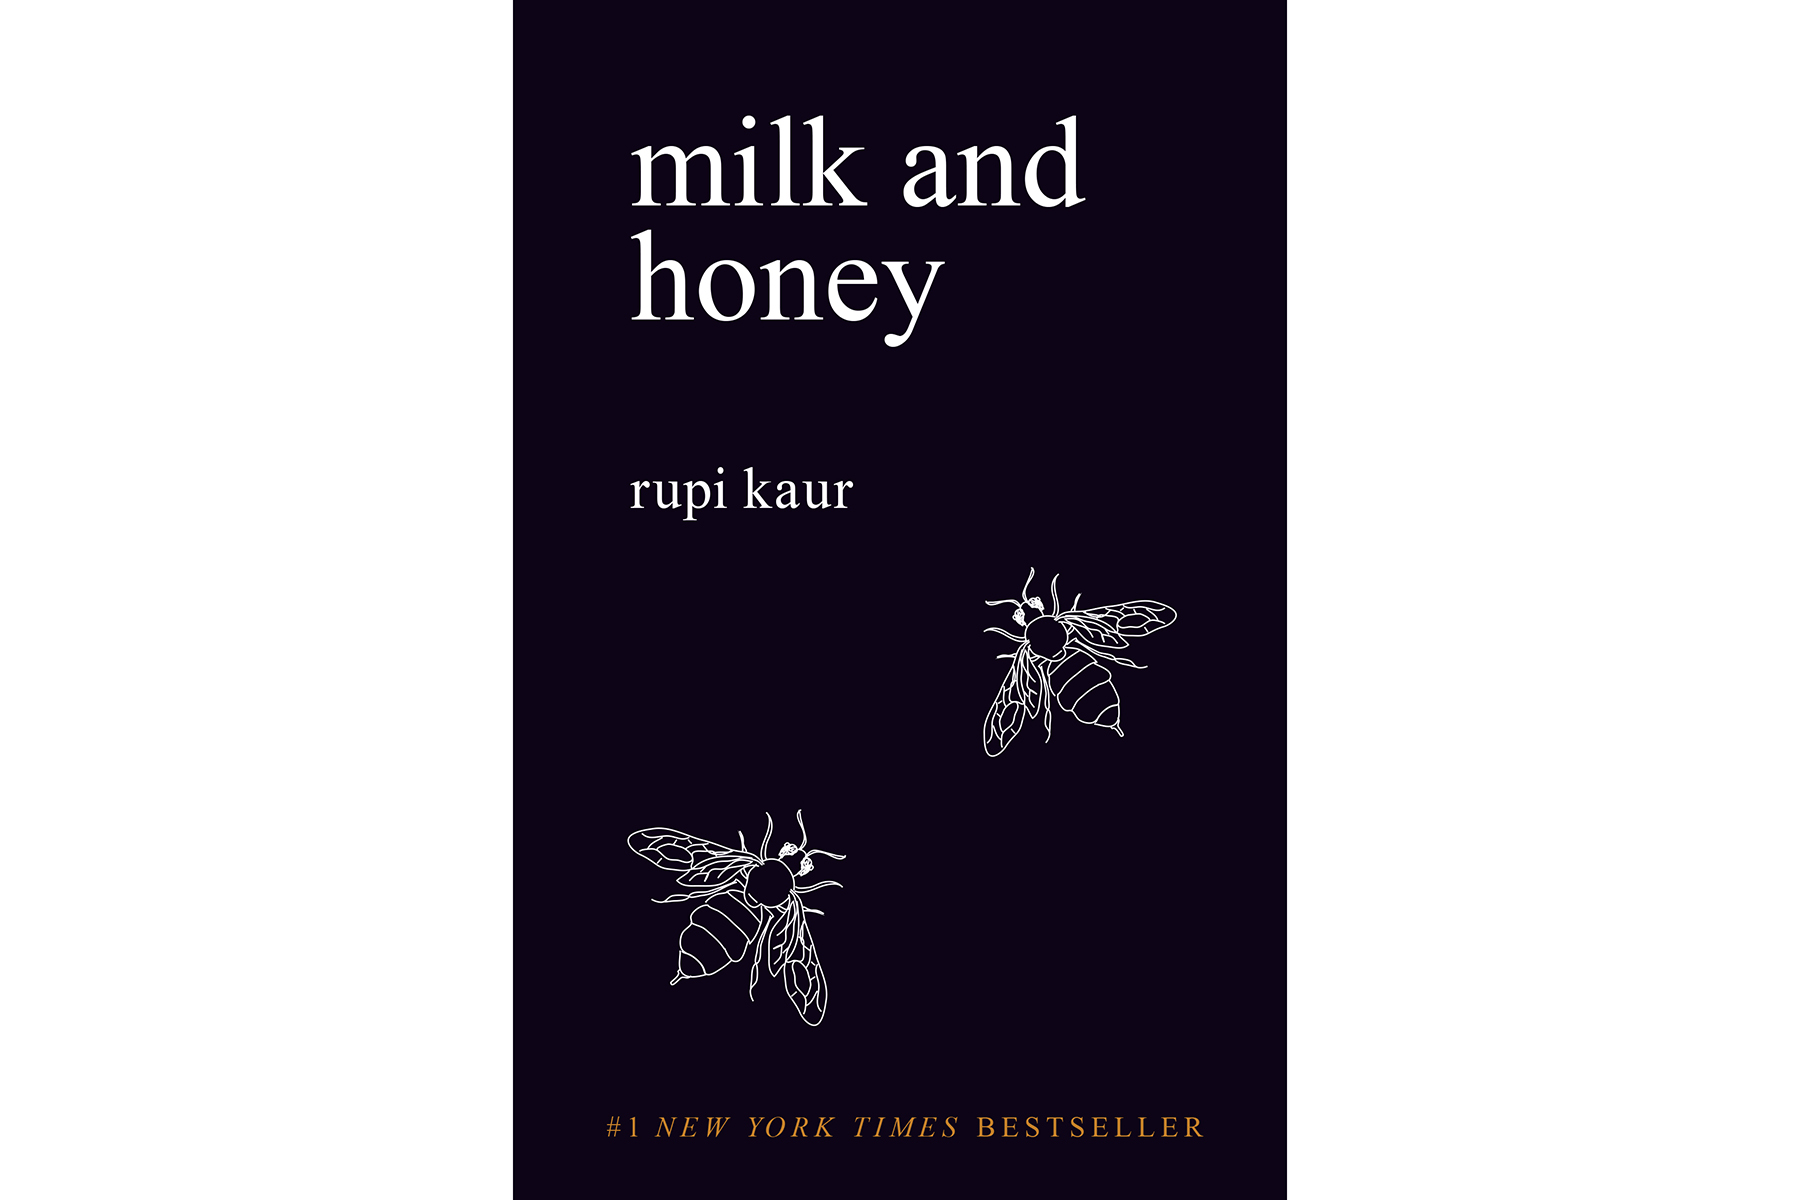 Milk and Honey, by Rupi Kaur